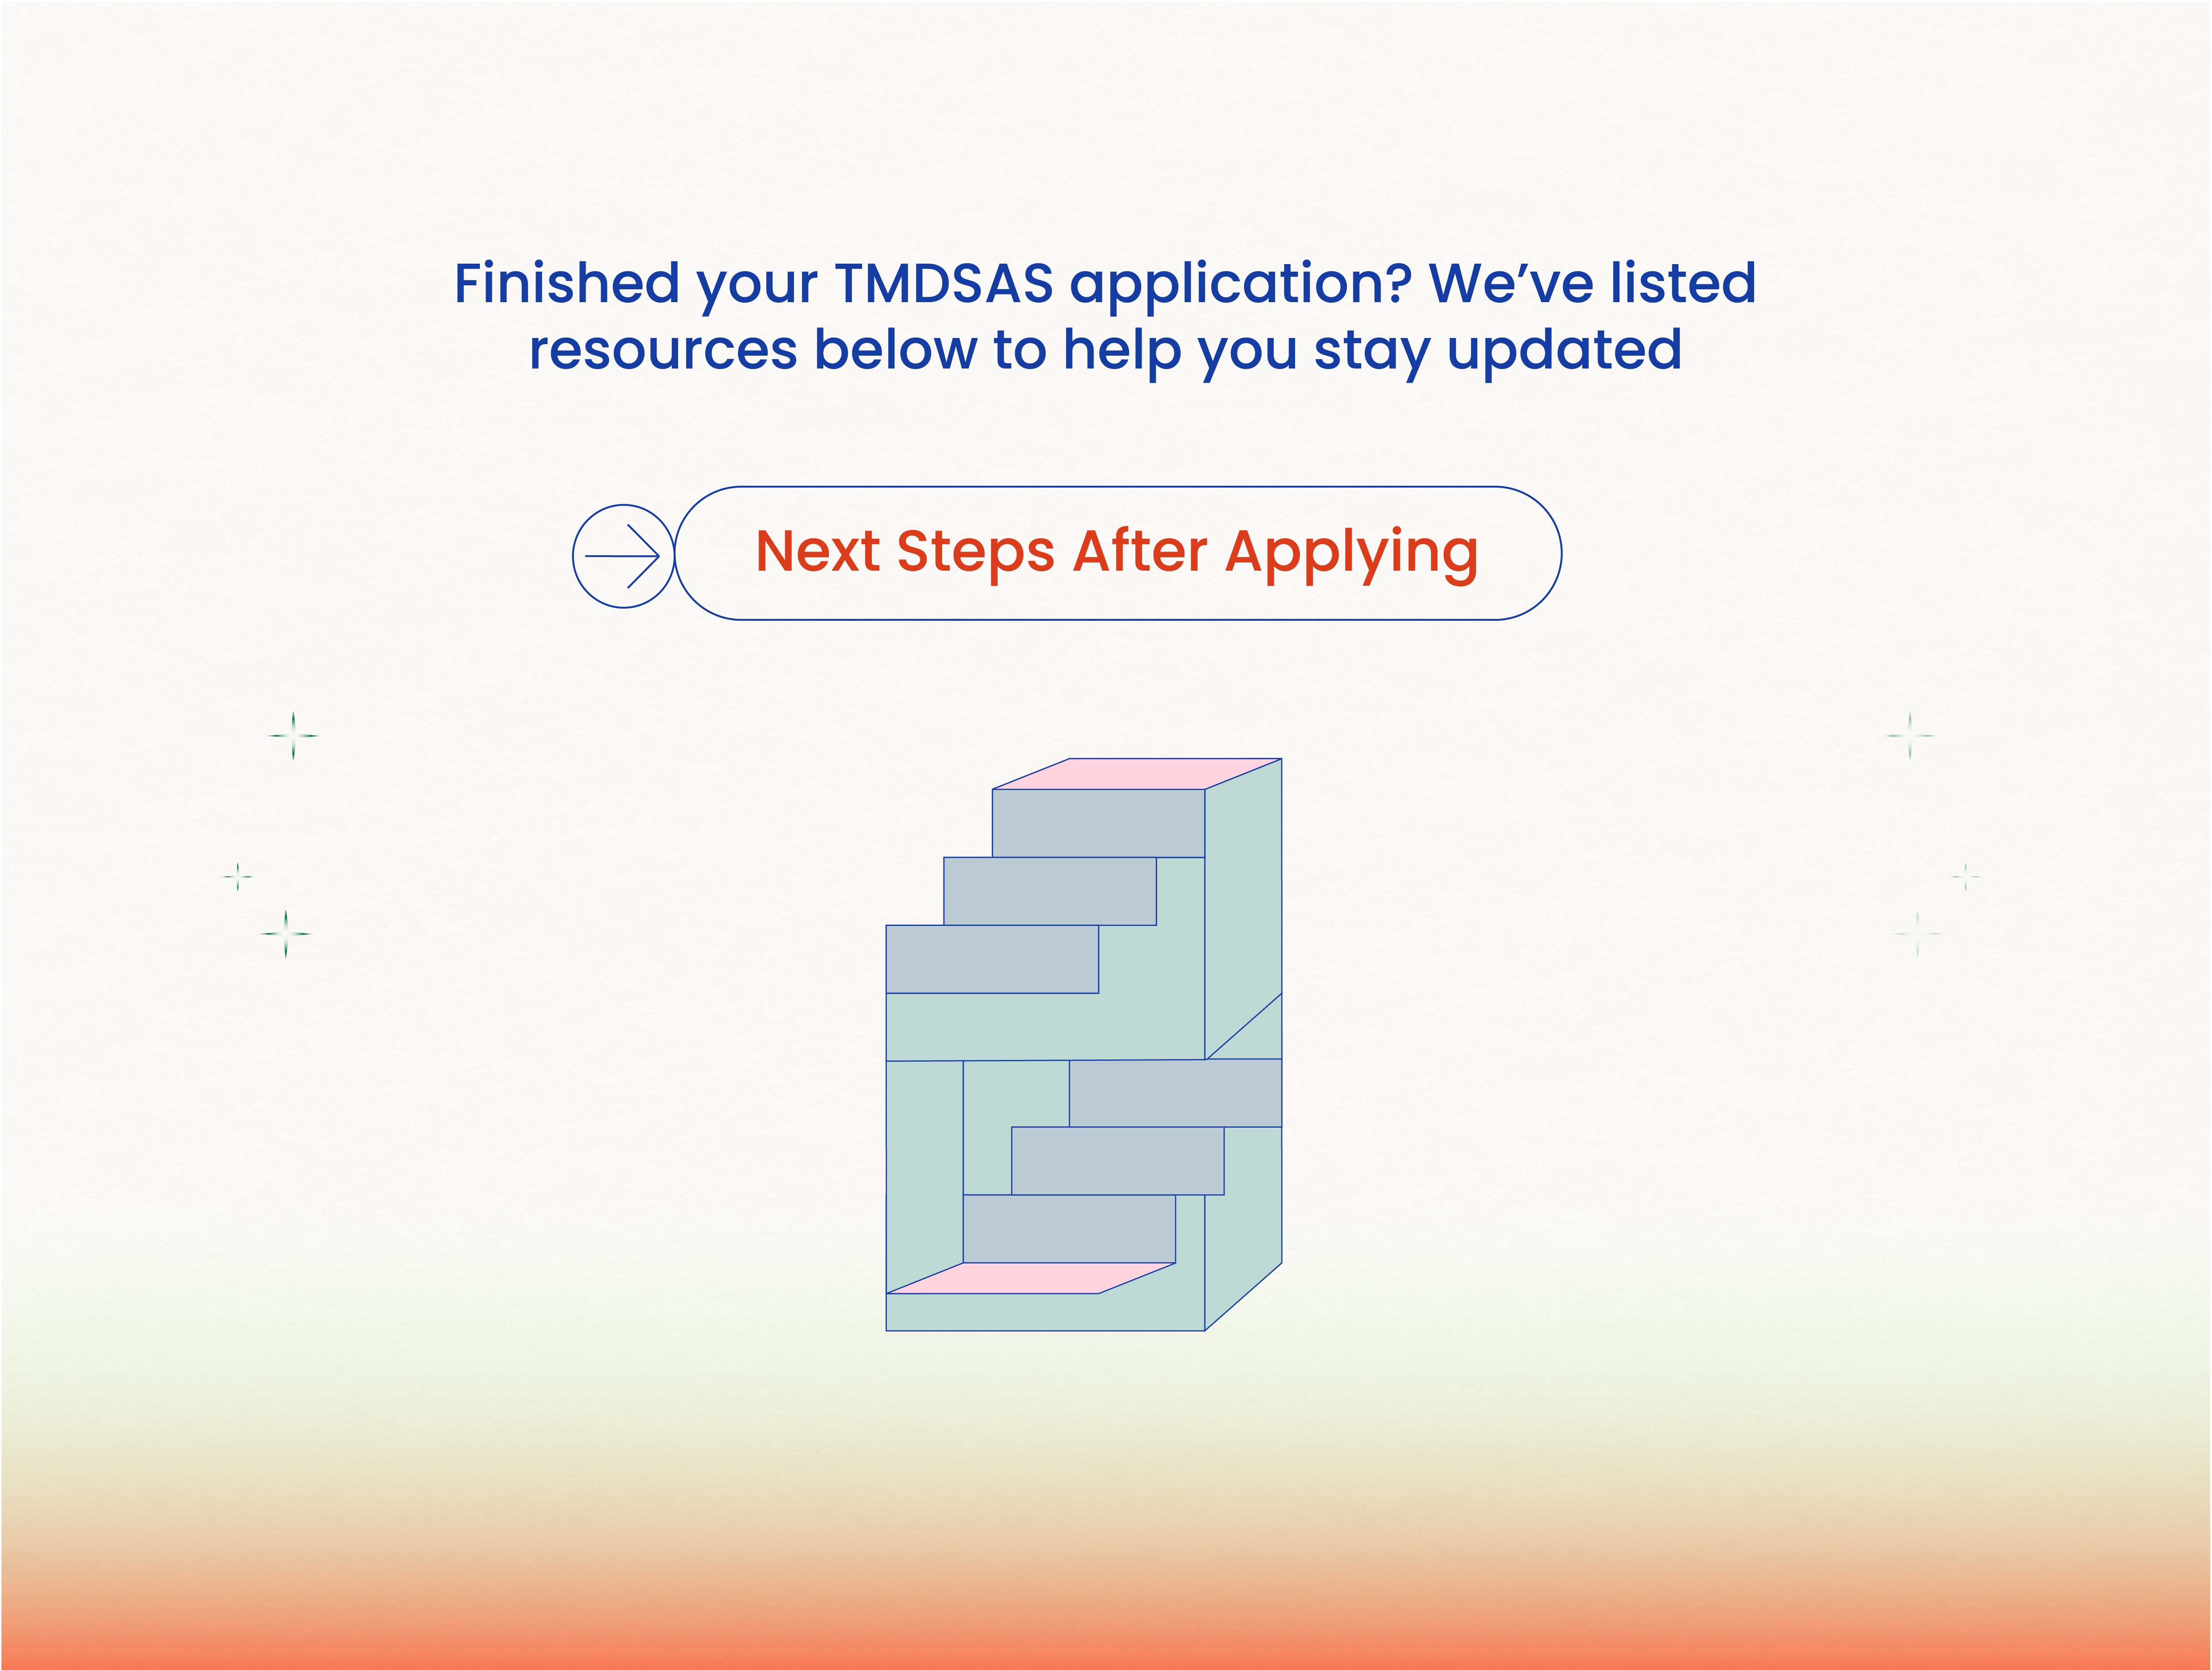 Next Steps after the Application